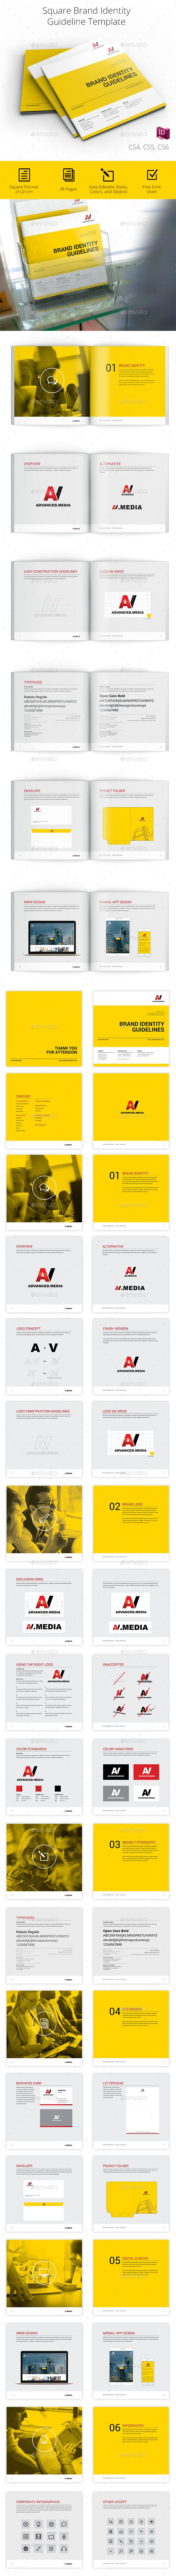 Square Brand Identity Guidelines — InDesign INDD #business proposal #brand • Available here → https://graphicriver.net/item/square-brand-identity-guidelines/16818162?ref=pxcr